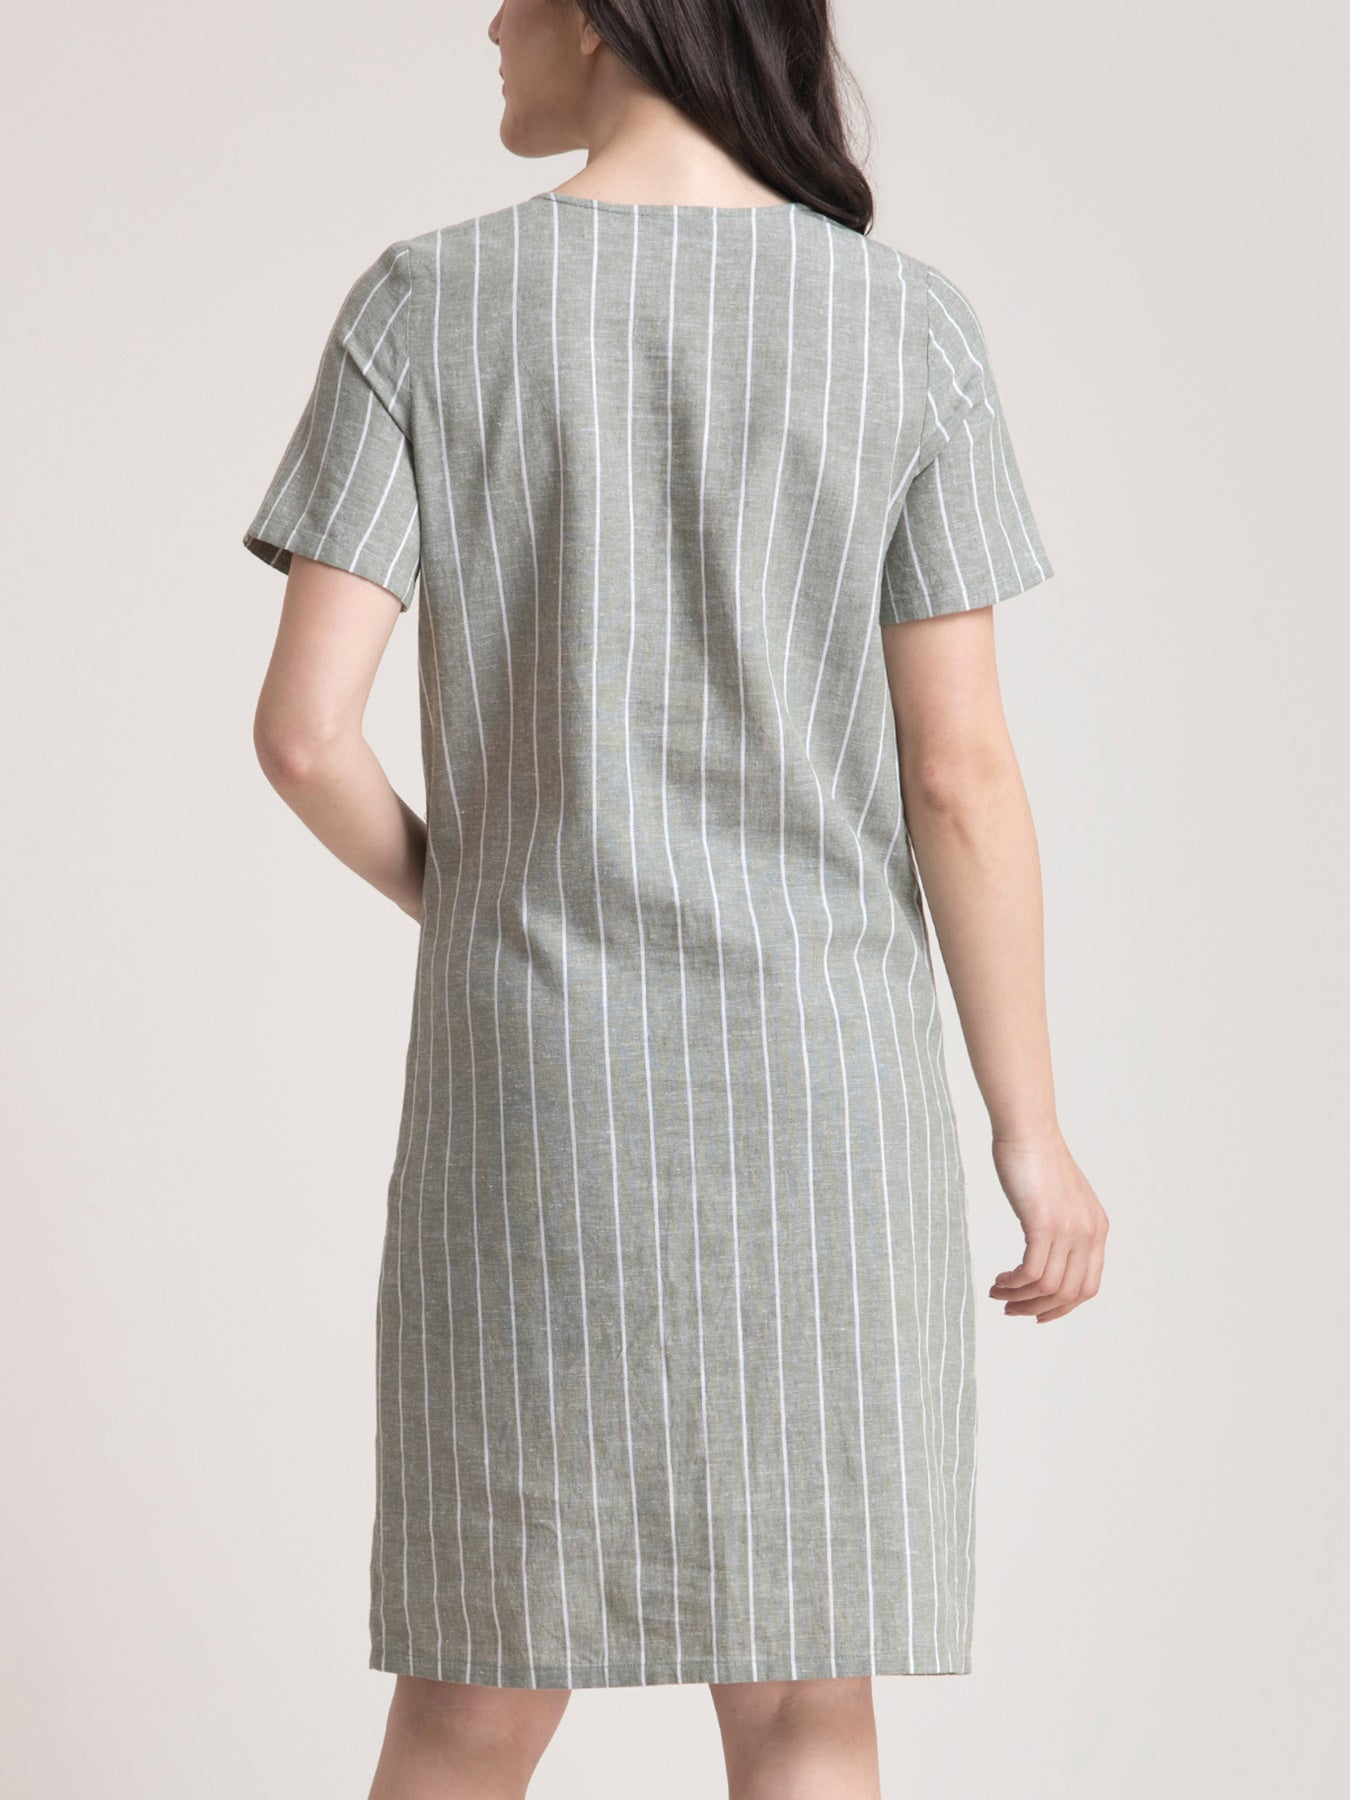 Linen Square Neck Striped Shirt Dress - Green and White